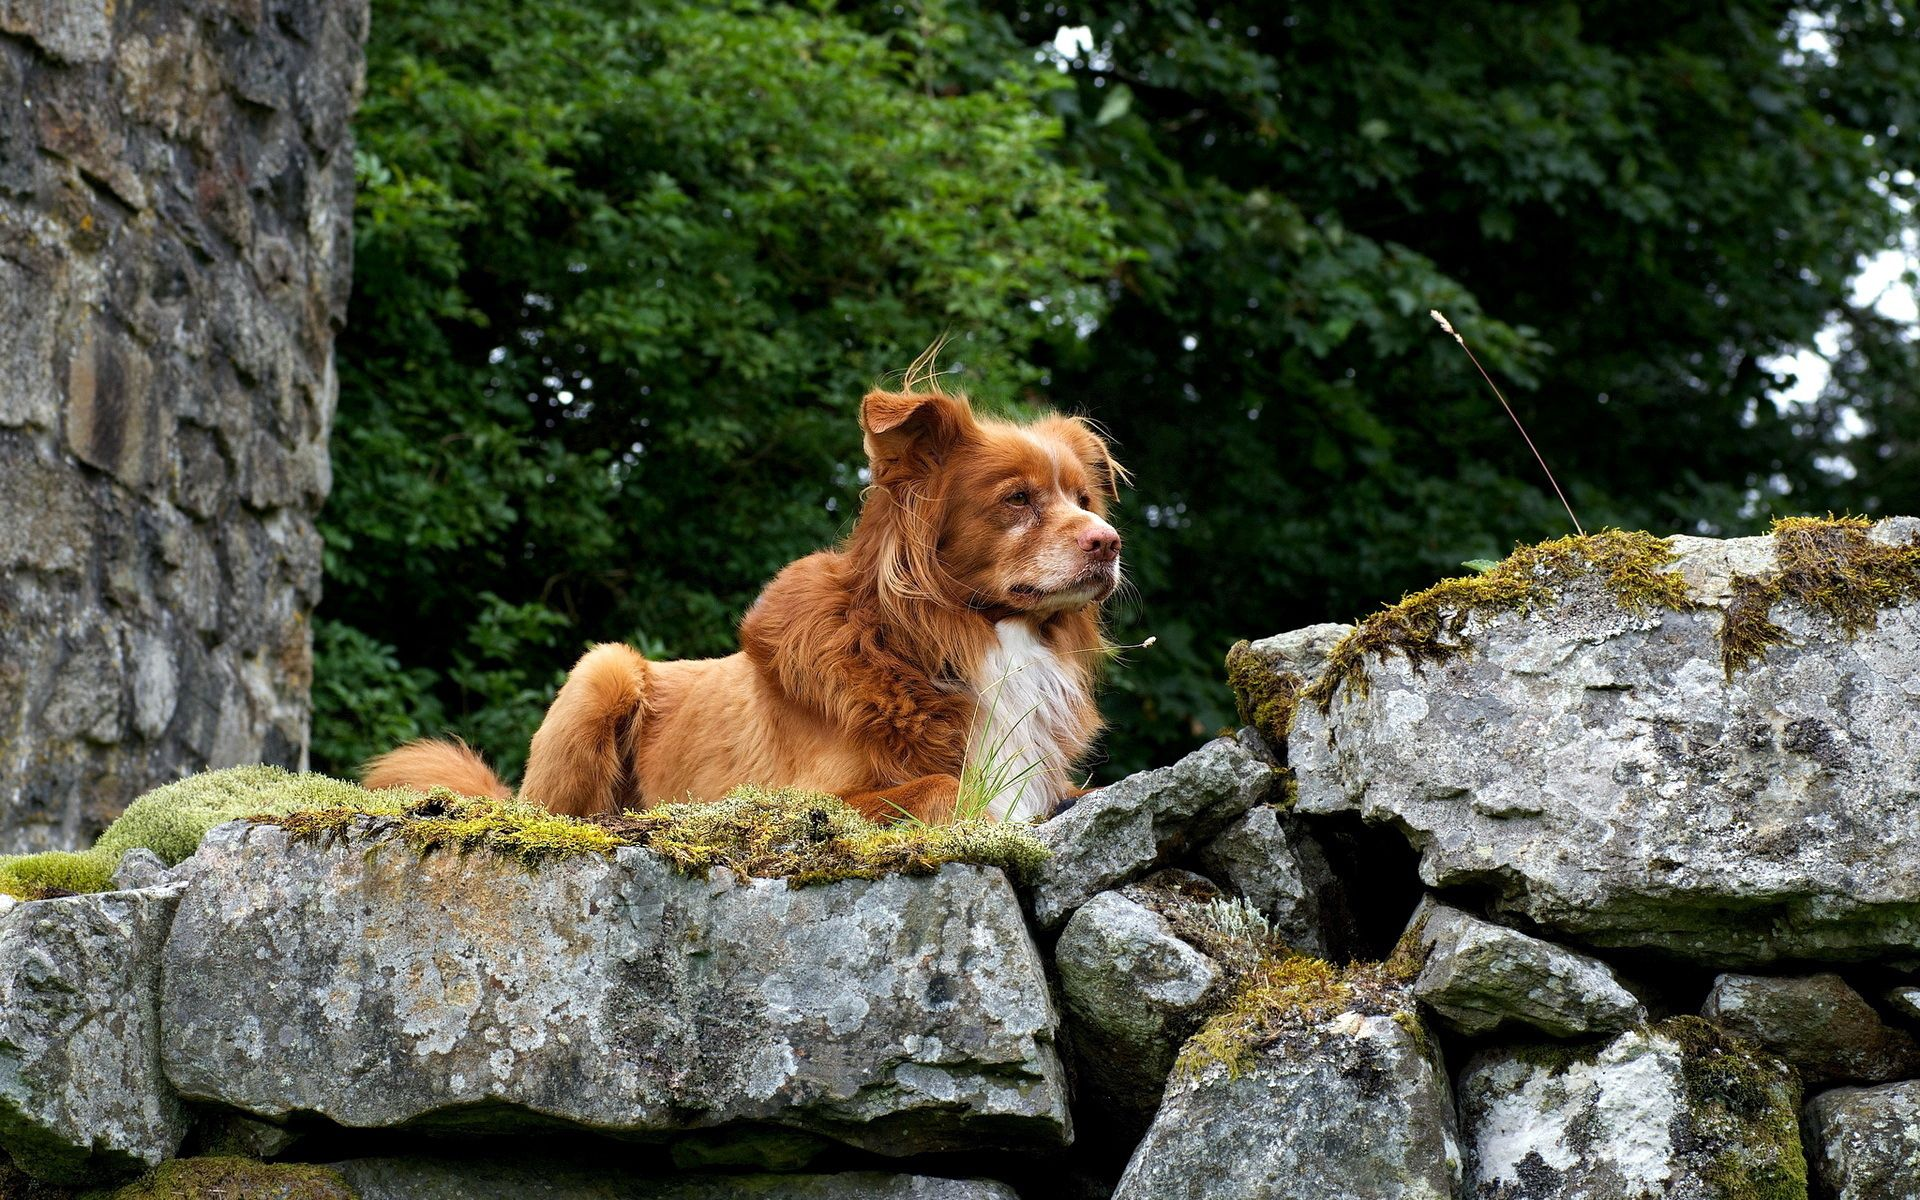 115522 download wallpaper Animals, Dogs, Stones, Elevation, Puppy screensavers and pictures for free